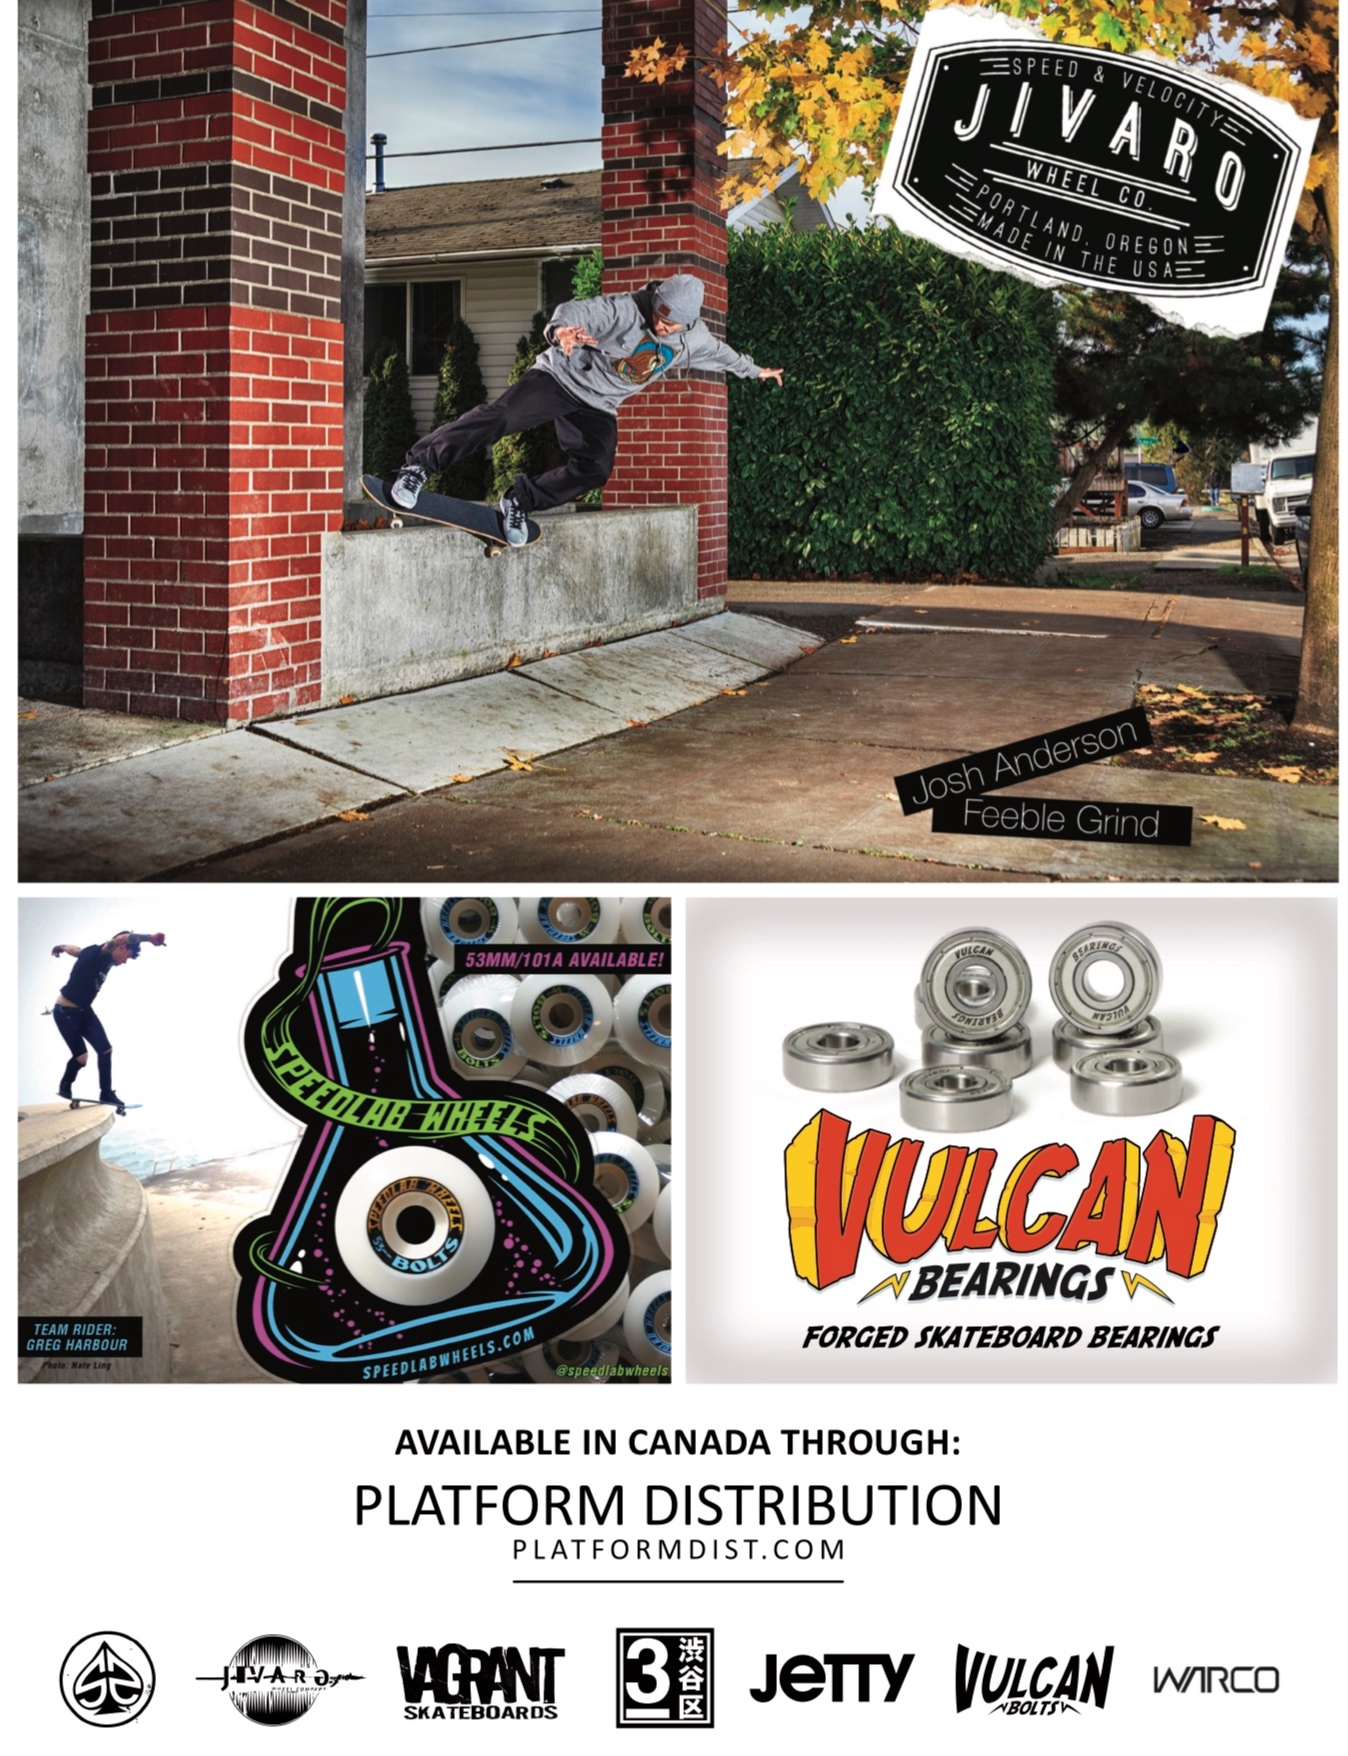 Jivaro Wheels, Speedlab Wheels and Vulcan Bearings ad from Concrete Magazine